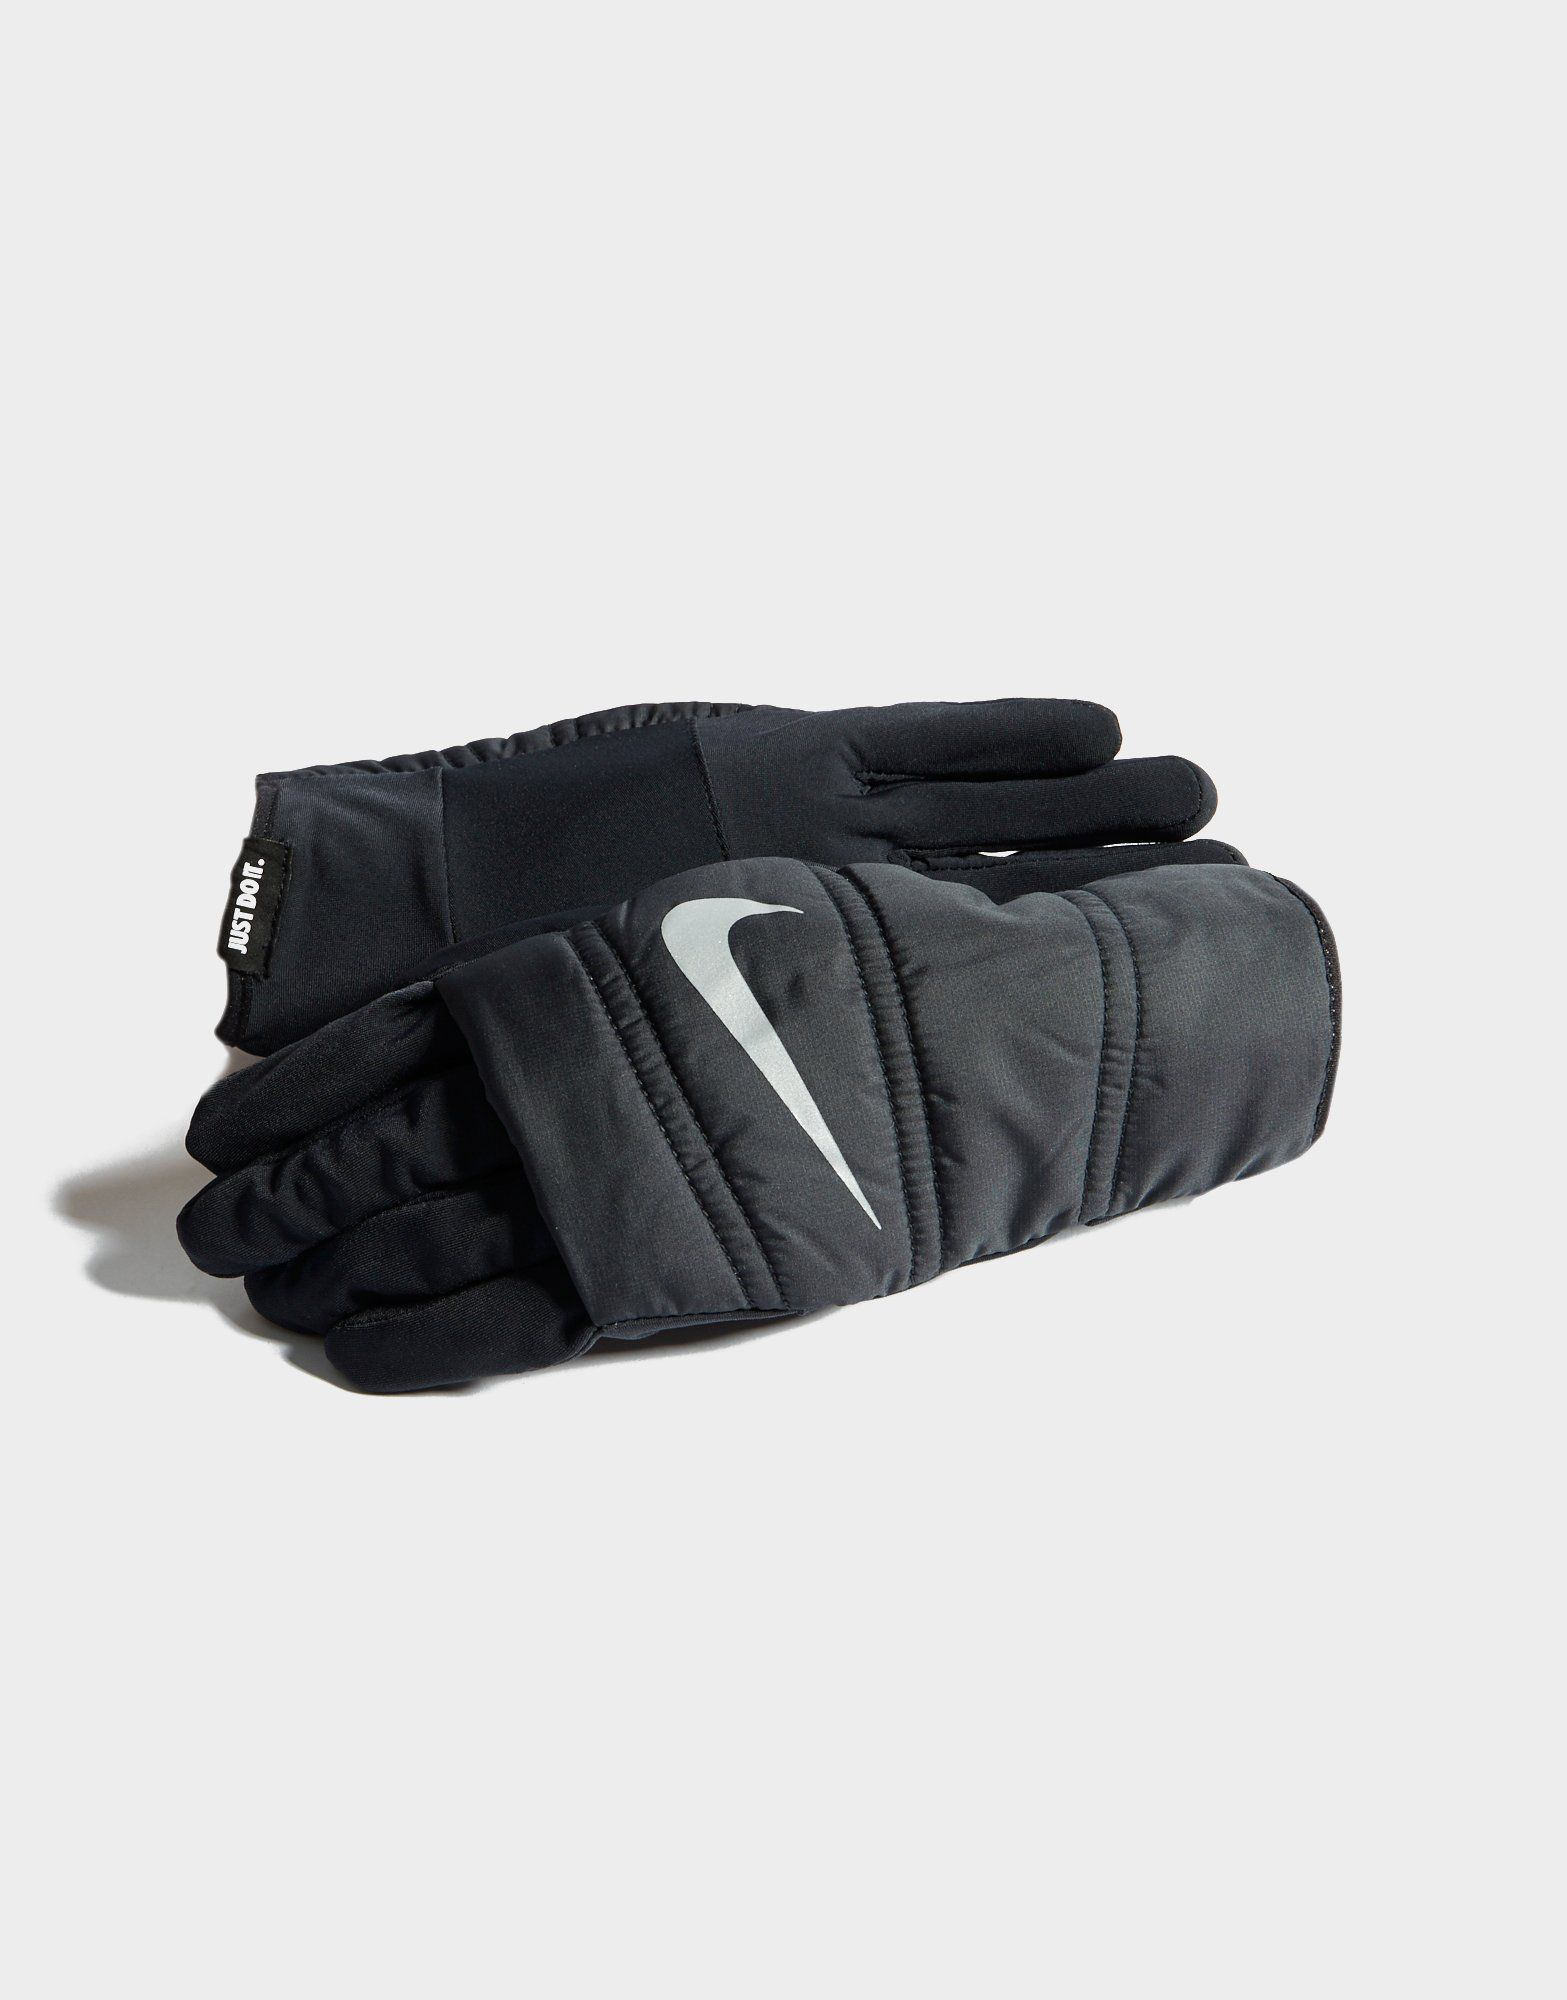 Nike Quilted Gloves